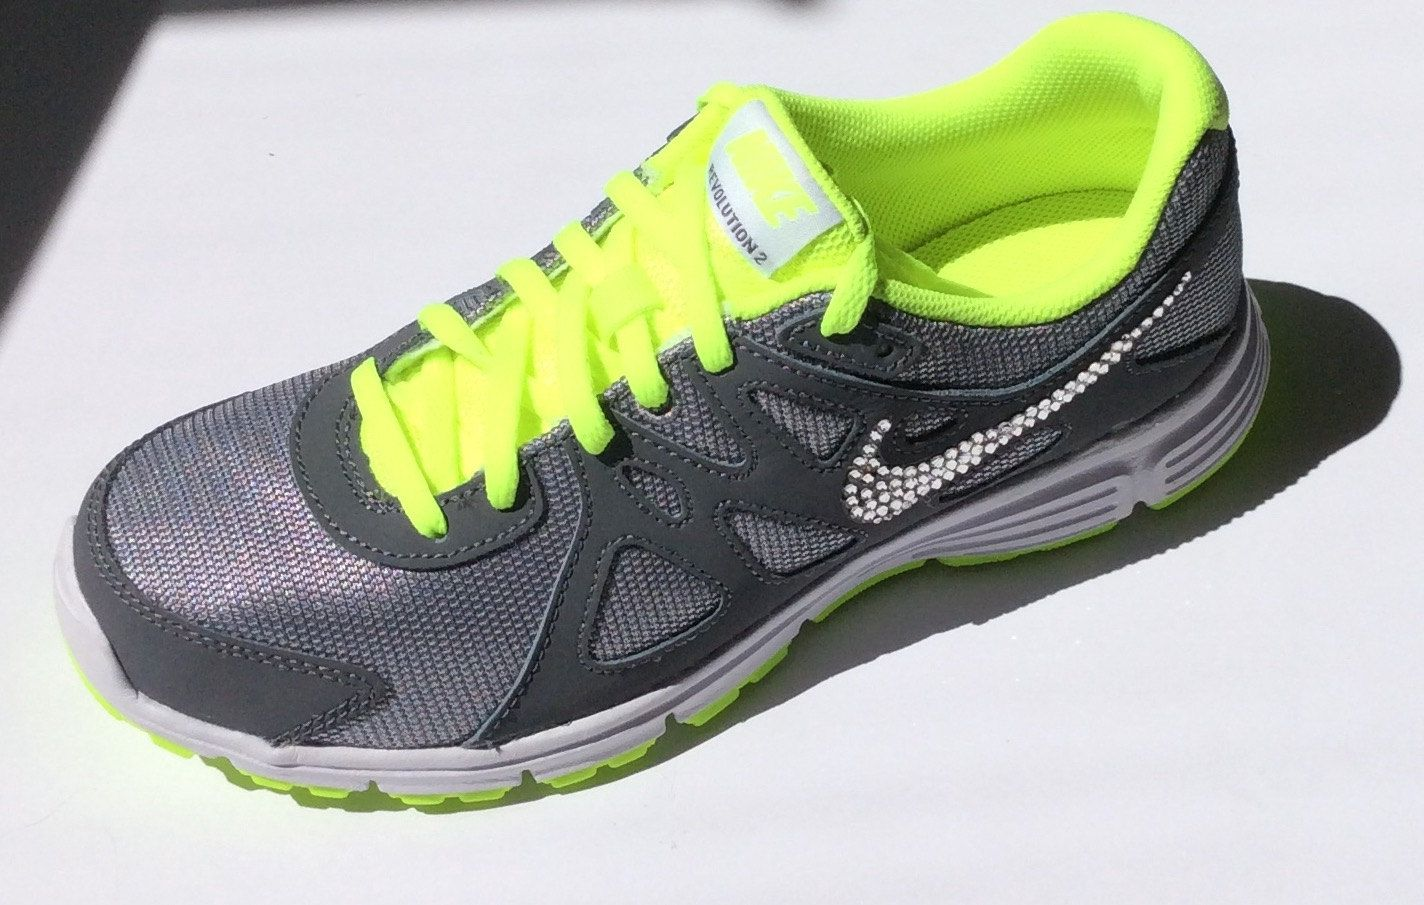 ac77b3c9a991 Swarovski Crystal Nike Revolution 2 for Women and Girls